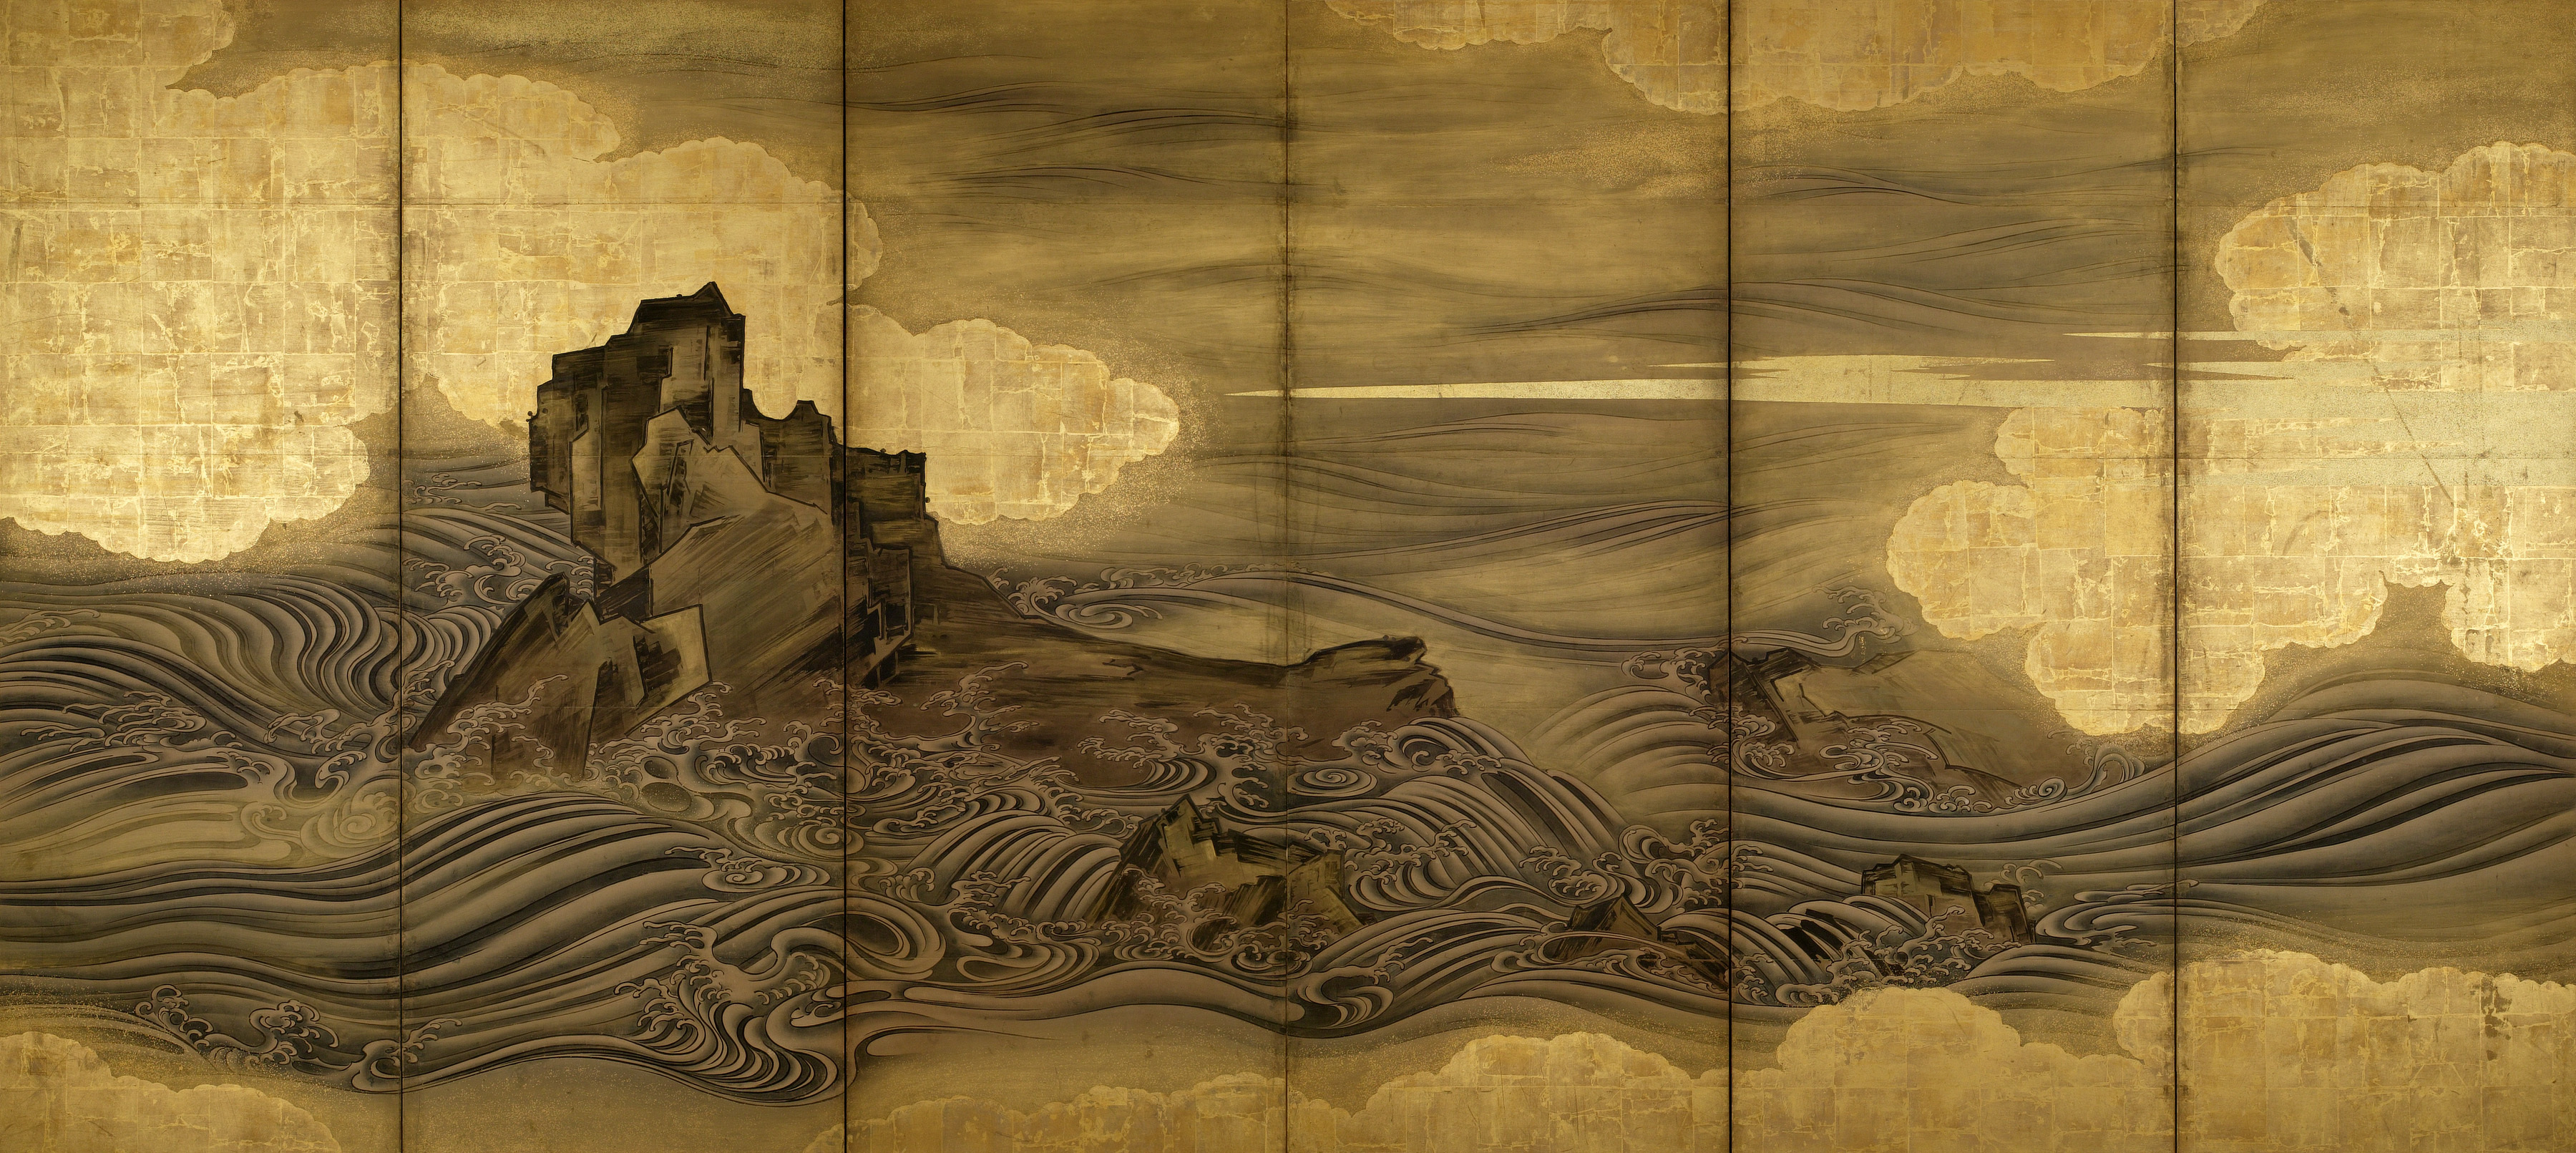 Byobu the grandeur of japanese screens interview for The art of painting